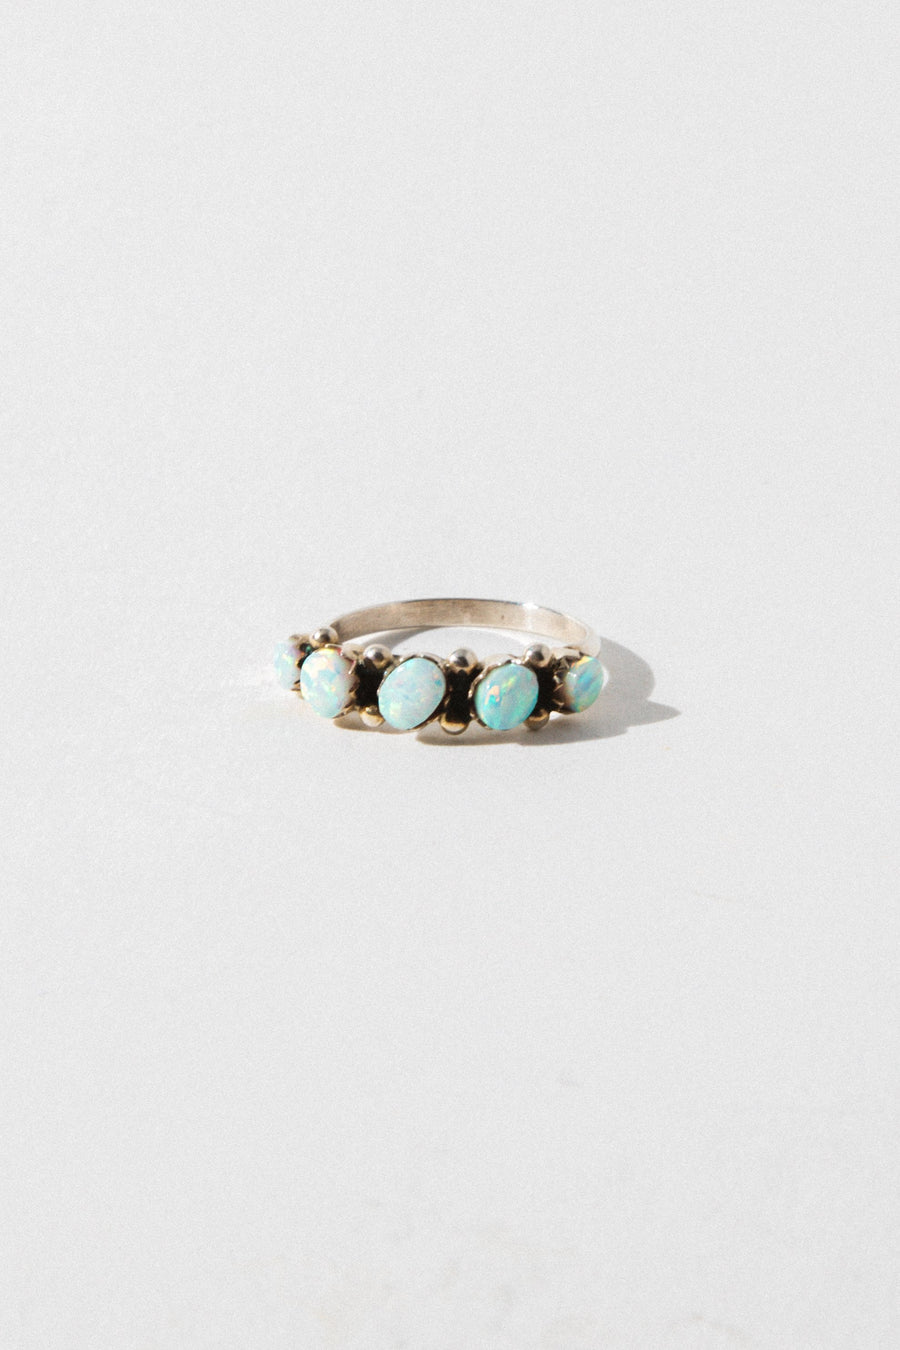 Thunderbird Jewelry Jewelry White Seeing Opal Zuni Ring